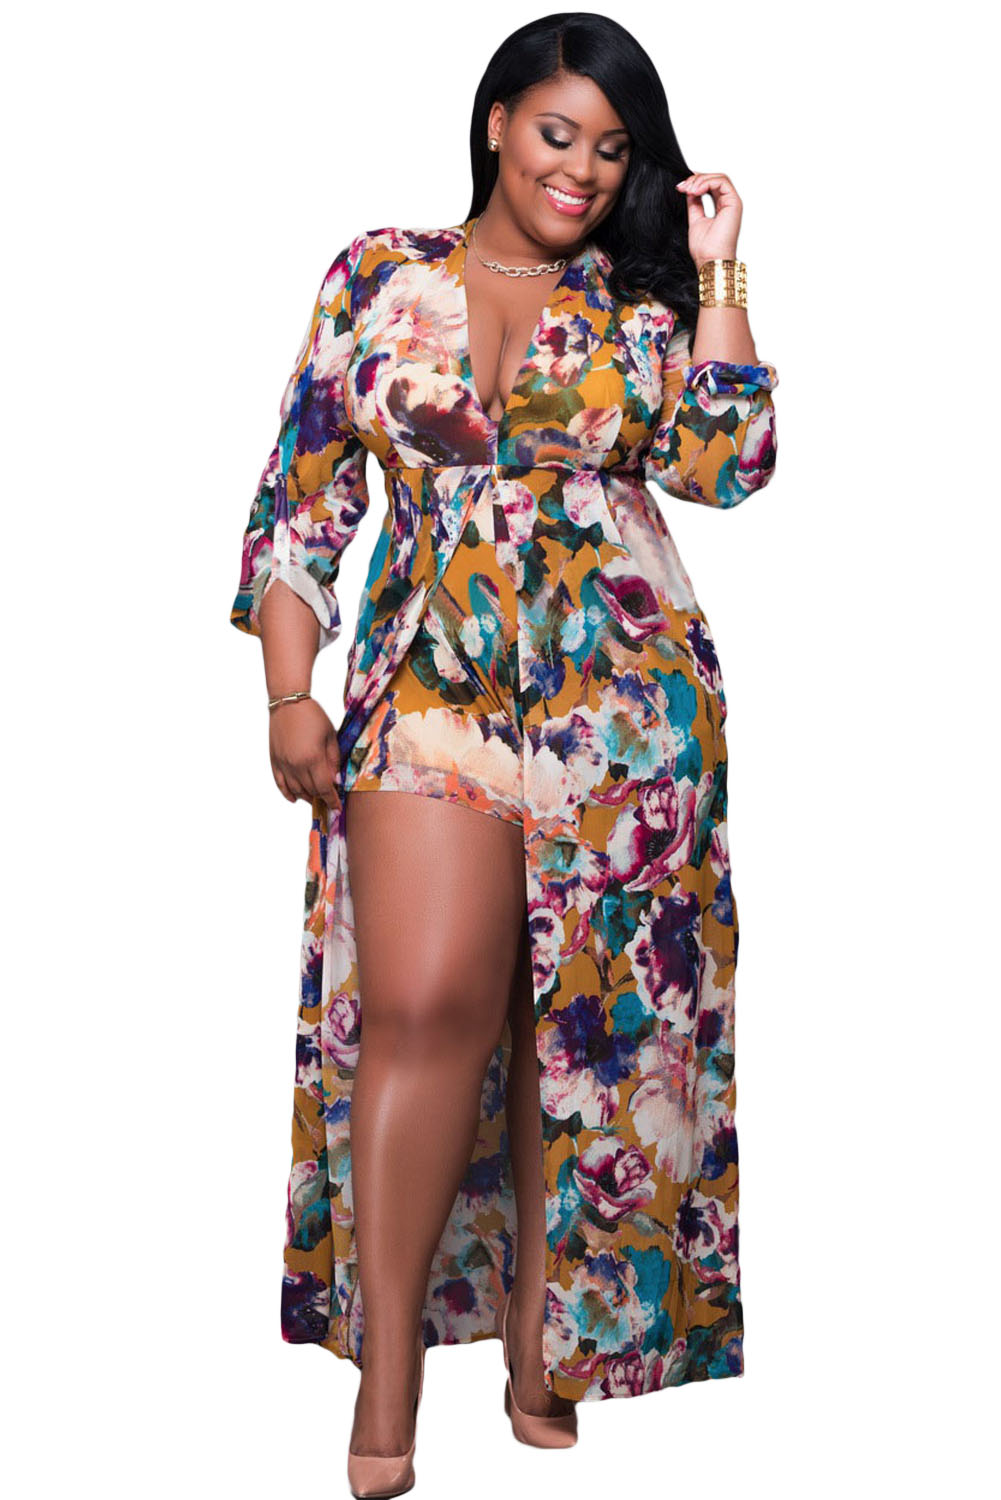 Plus Size Sleeved Floral Romper Maxi Dress Jadore Fashions